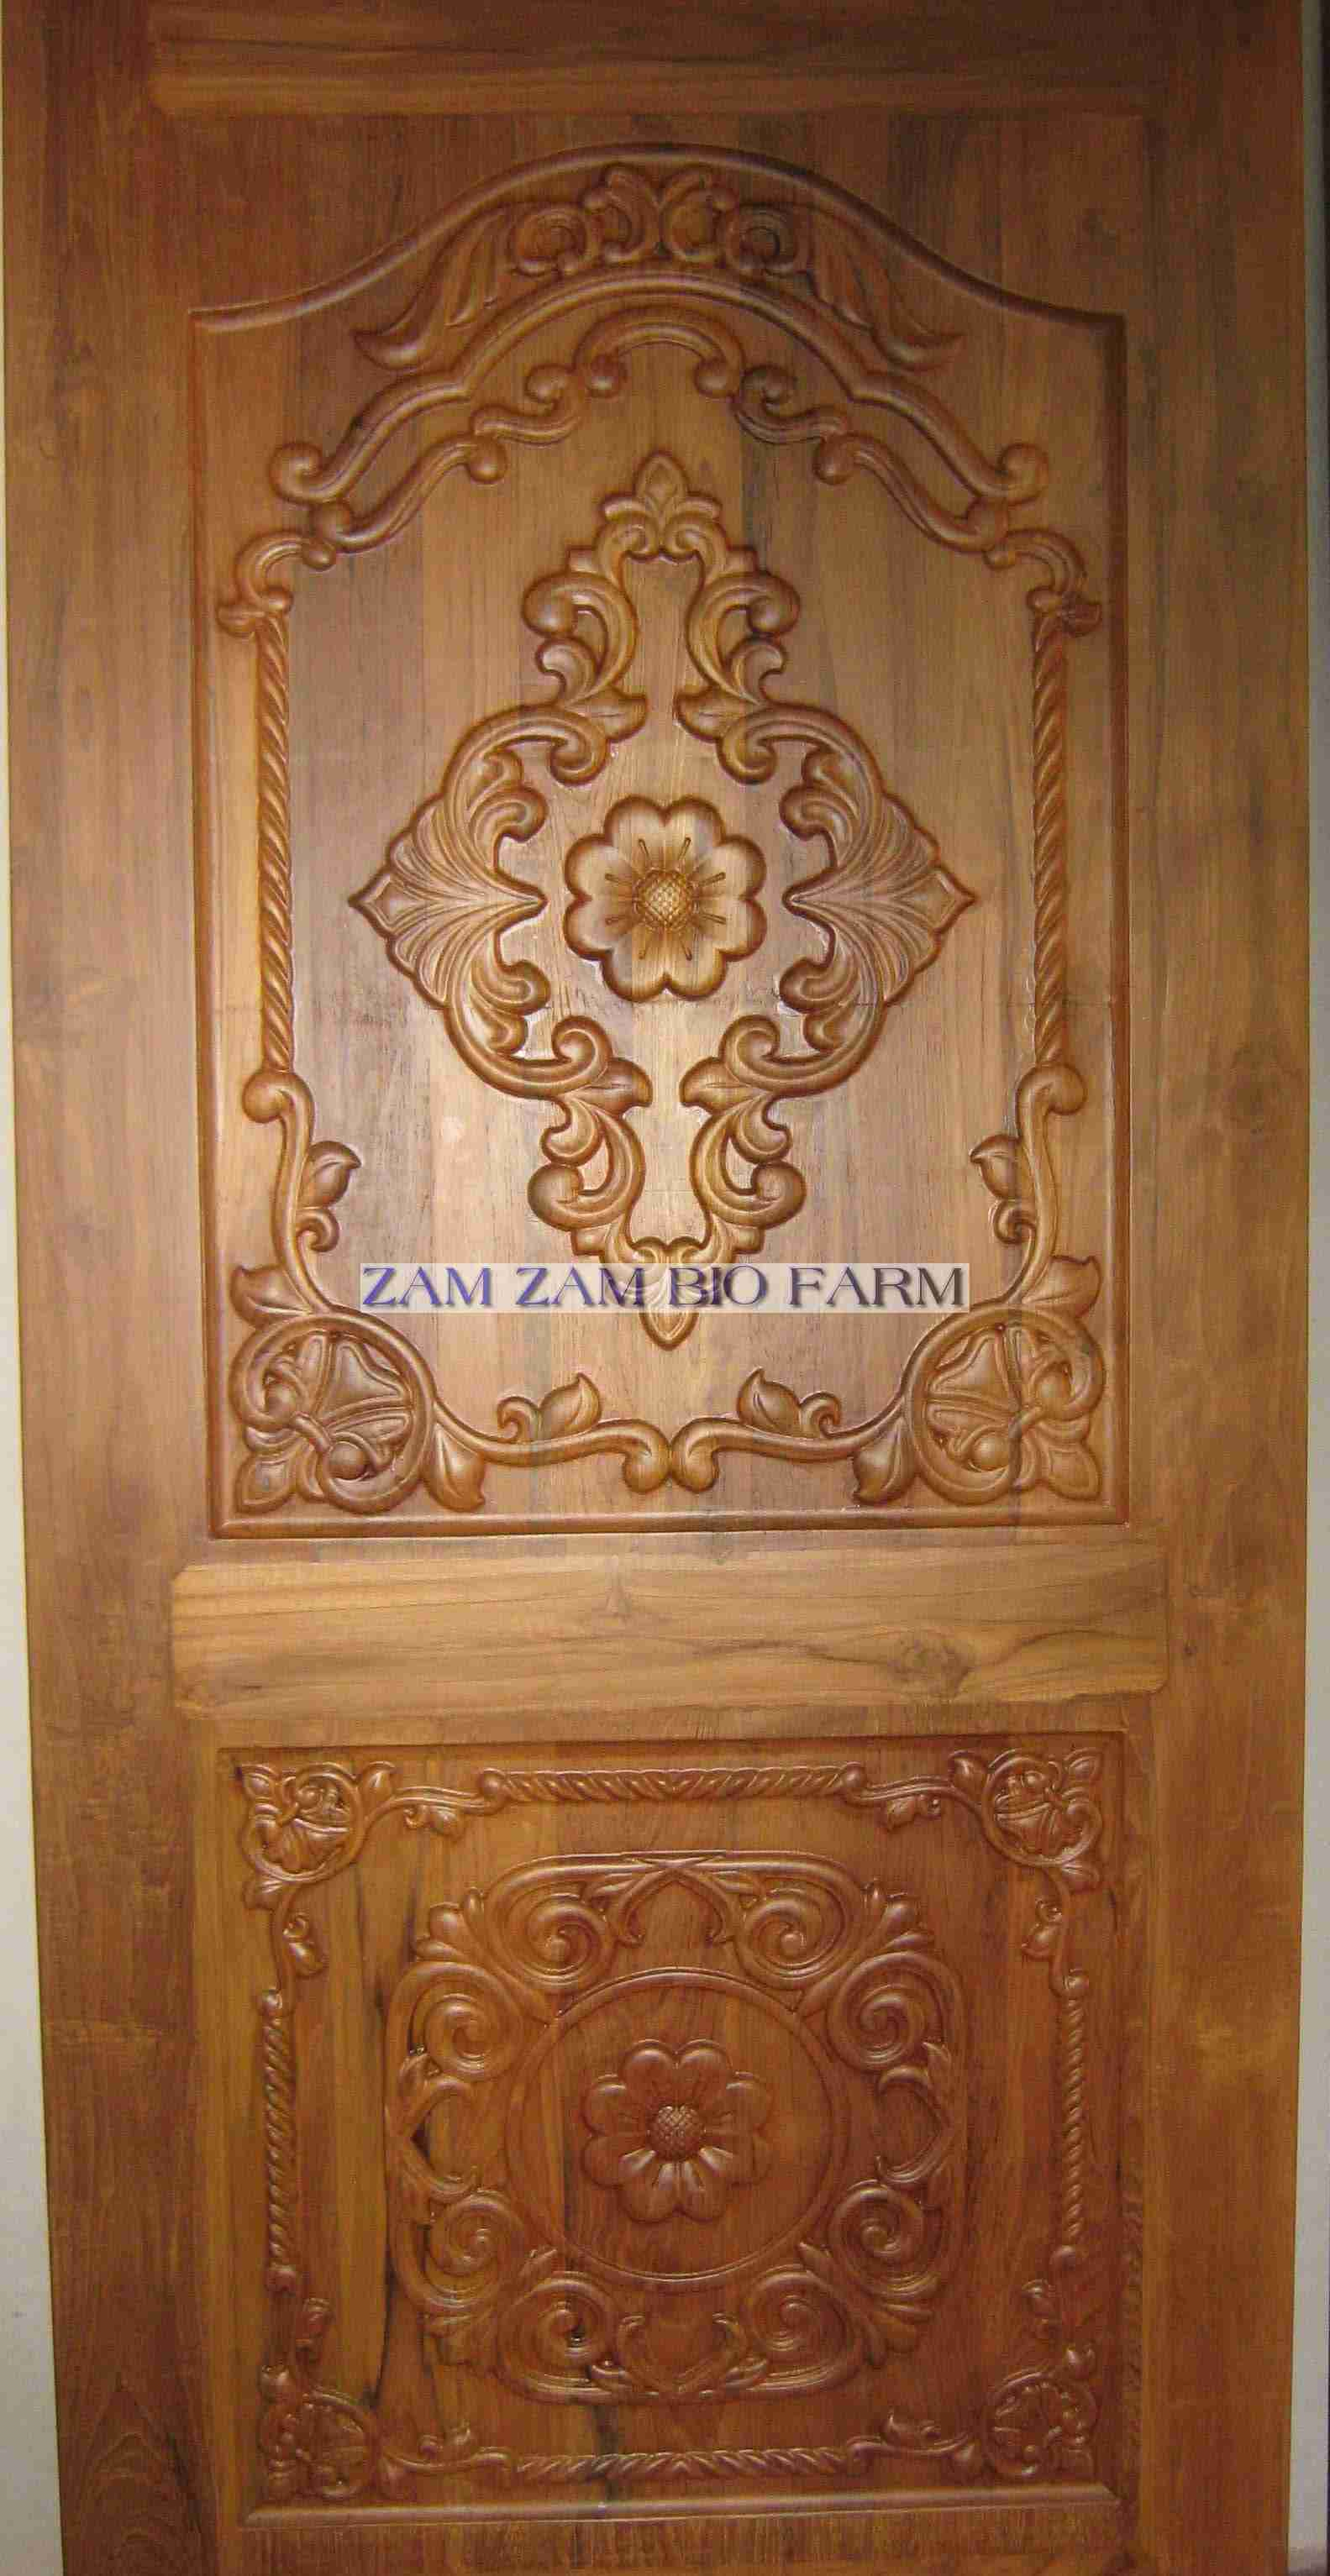 Burma Teak Doors Manufacturer In ERODE Tamil Nadu India By